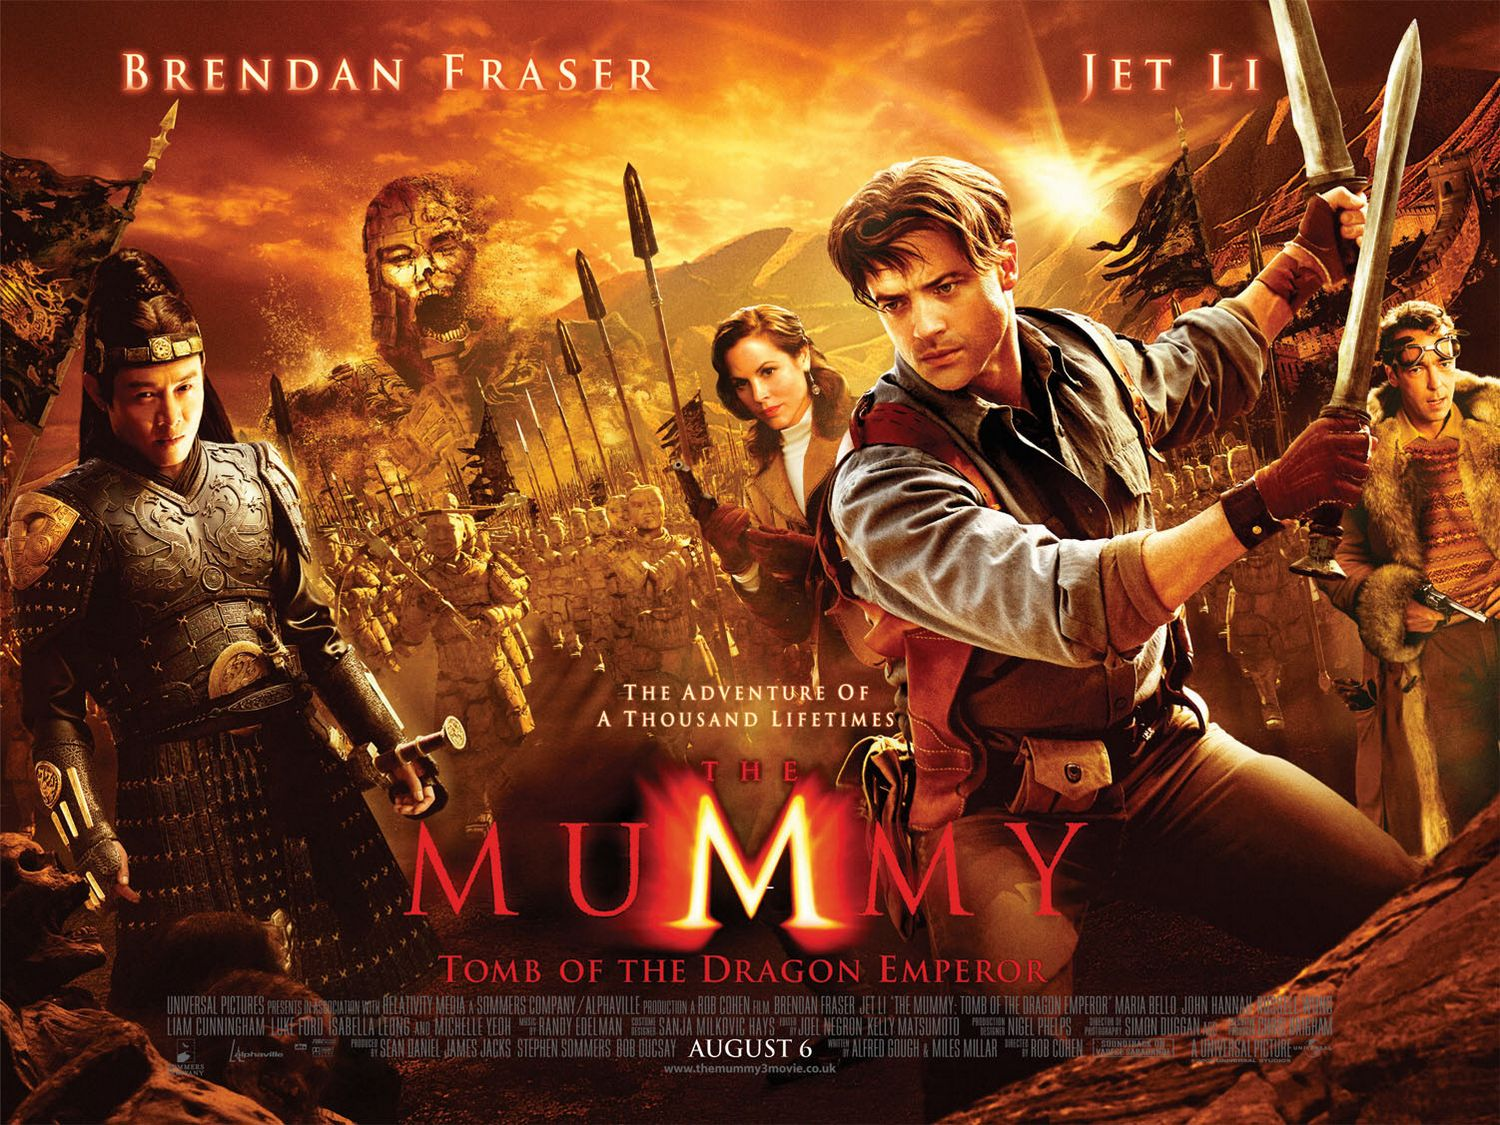 The Mummy Tomb Of The Dragon Emperor Actress Rachel Weisz Not In Th...